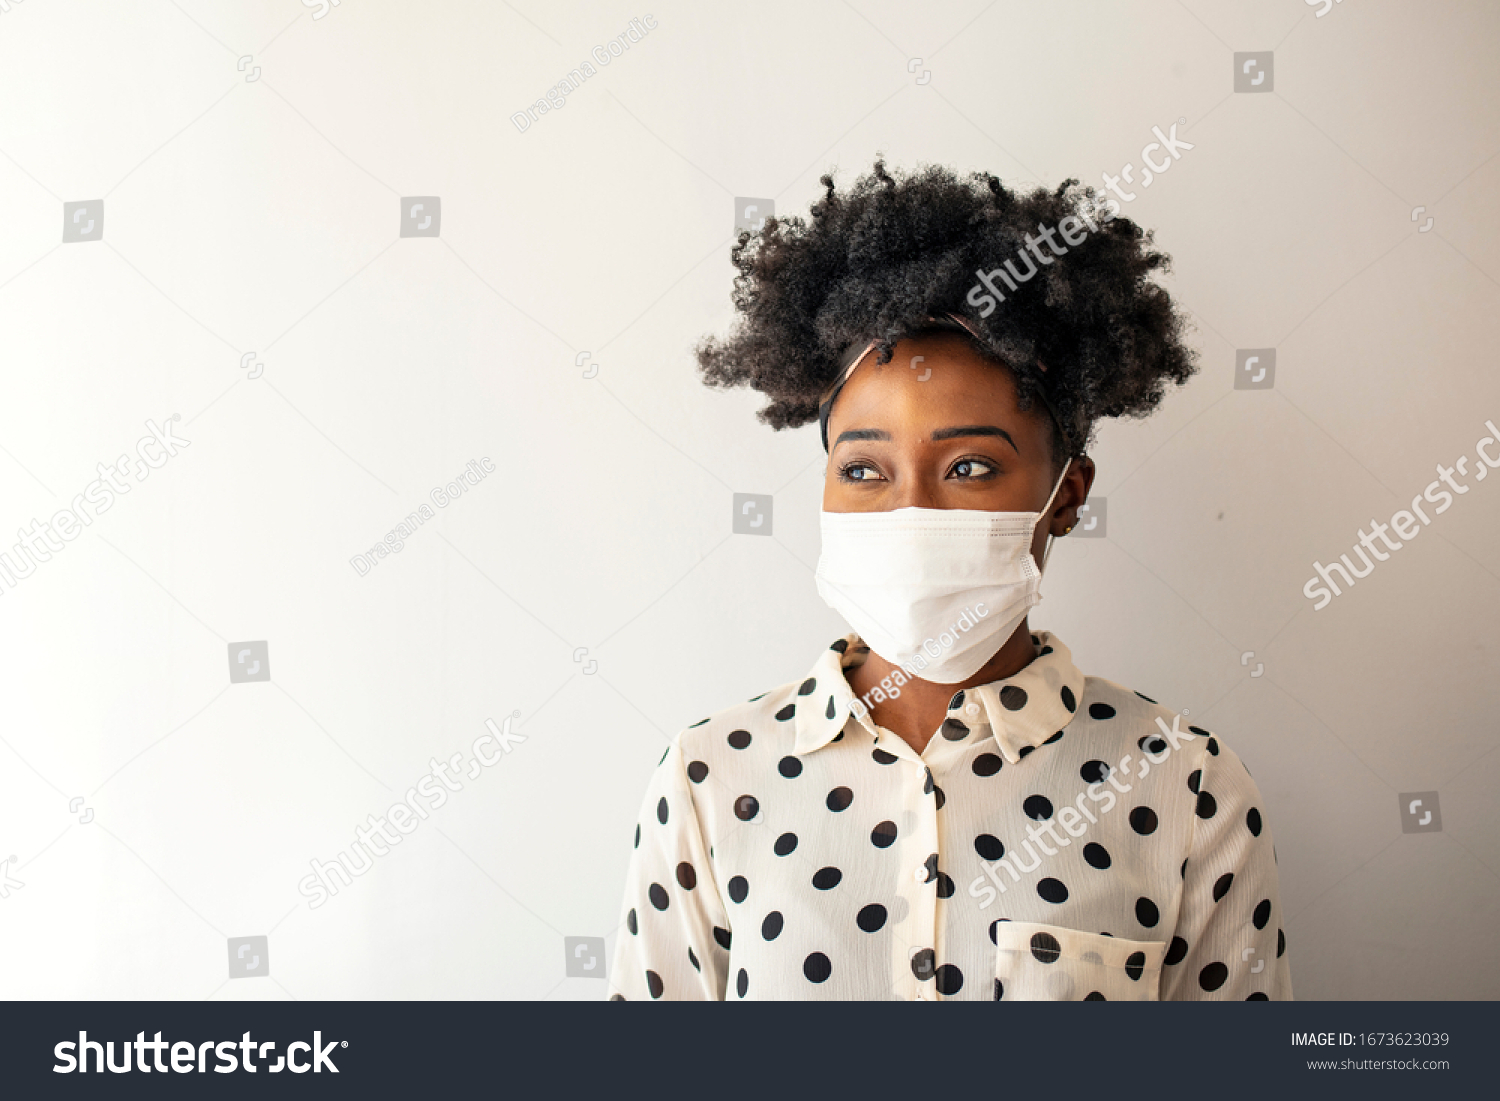 Masked woman - protection against influenza virus. African - American woman wearing mask for protect. Woman wear with protective face mask at home. Stop the virus and epidemic diseases. #1673623039